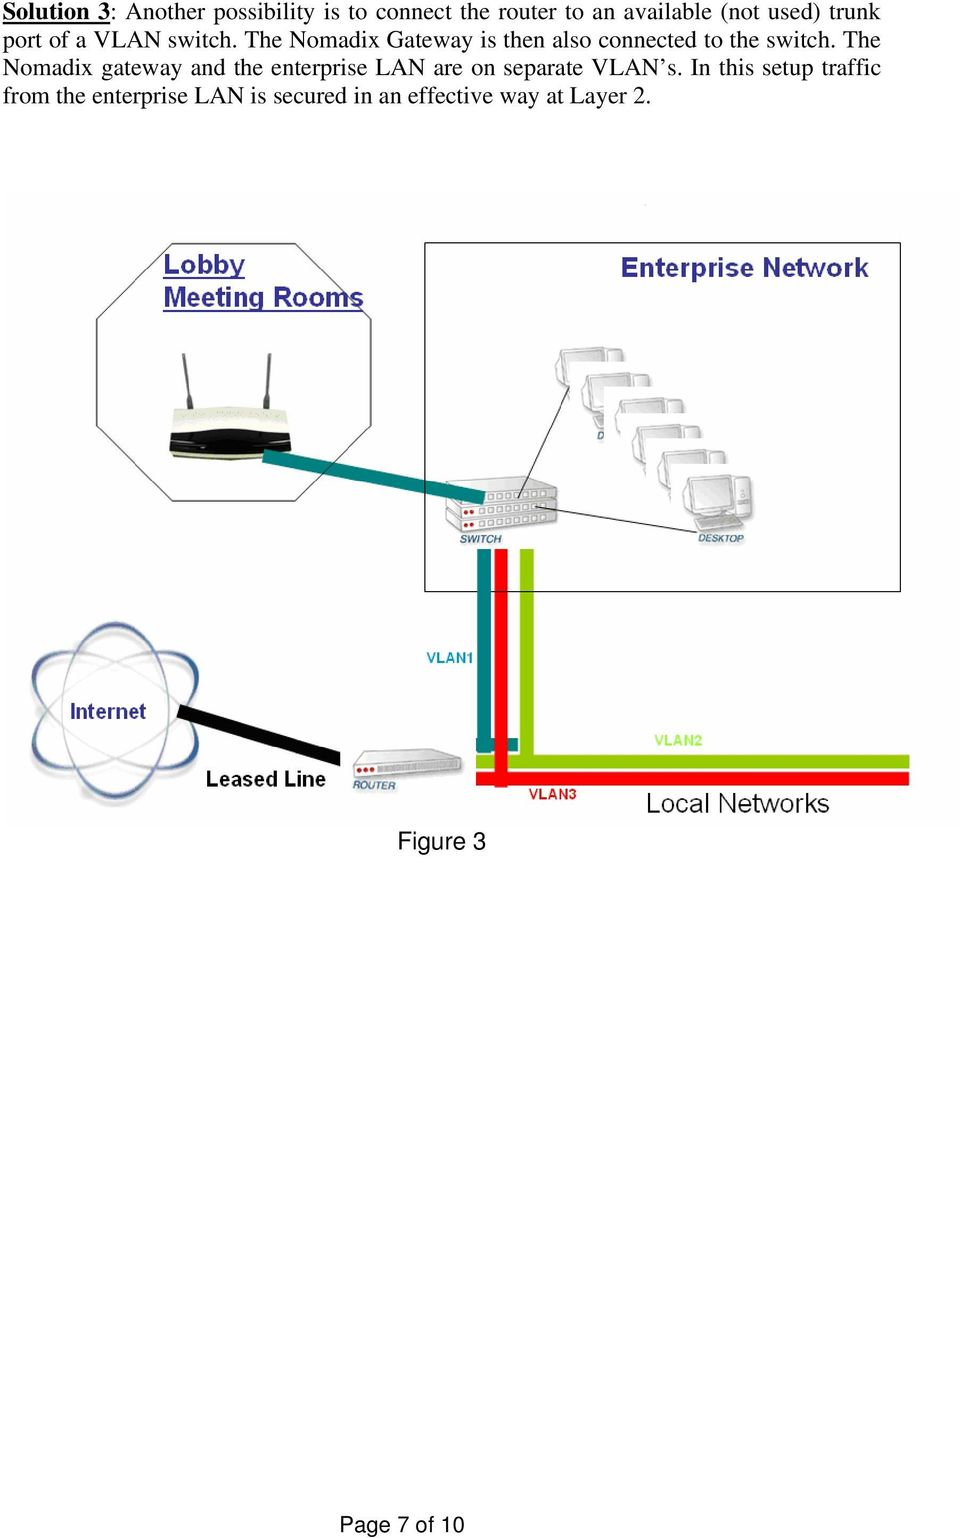 The Nomadix gateway and the enterprise LAN are on separate VLAN s.